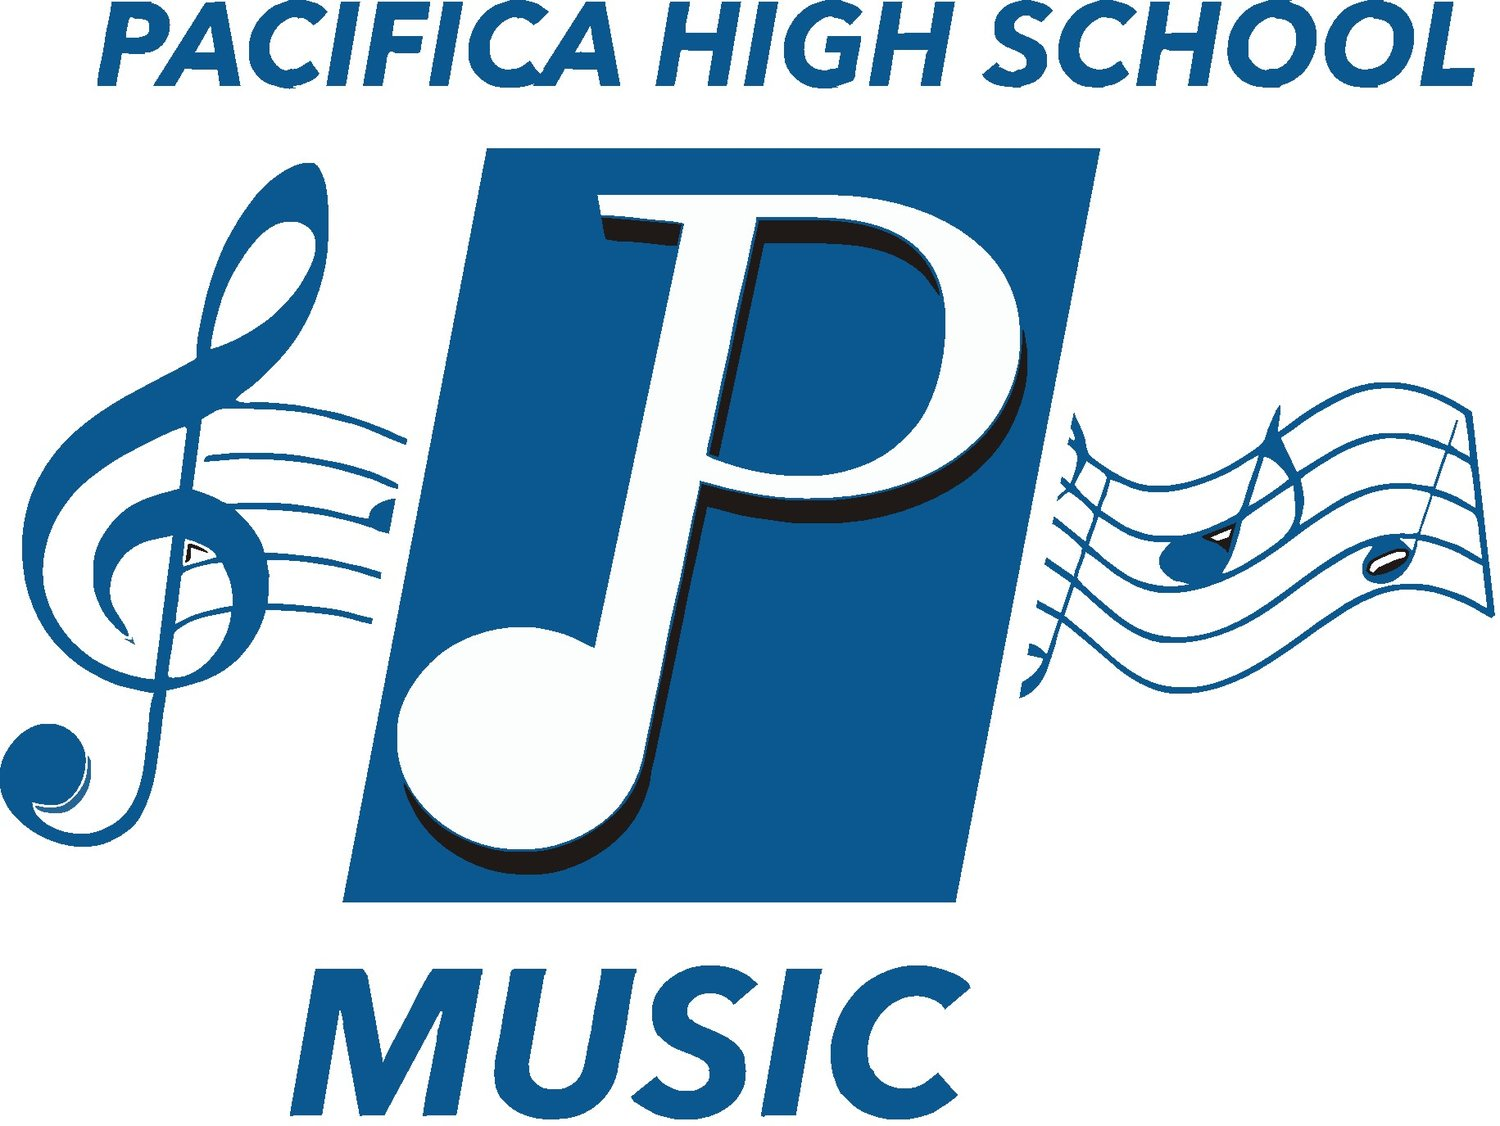 Pacifica High School Band and Colorguard